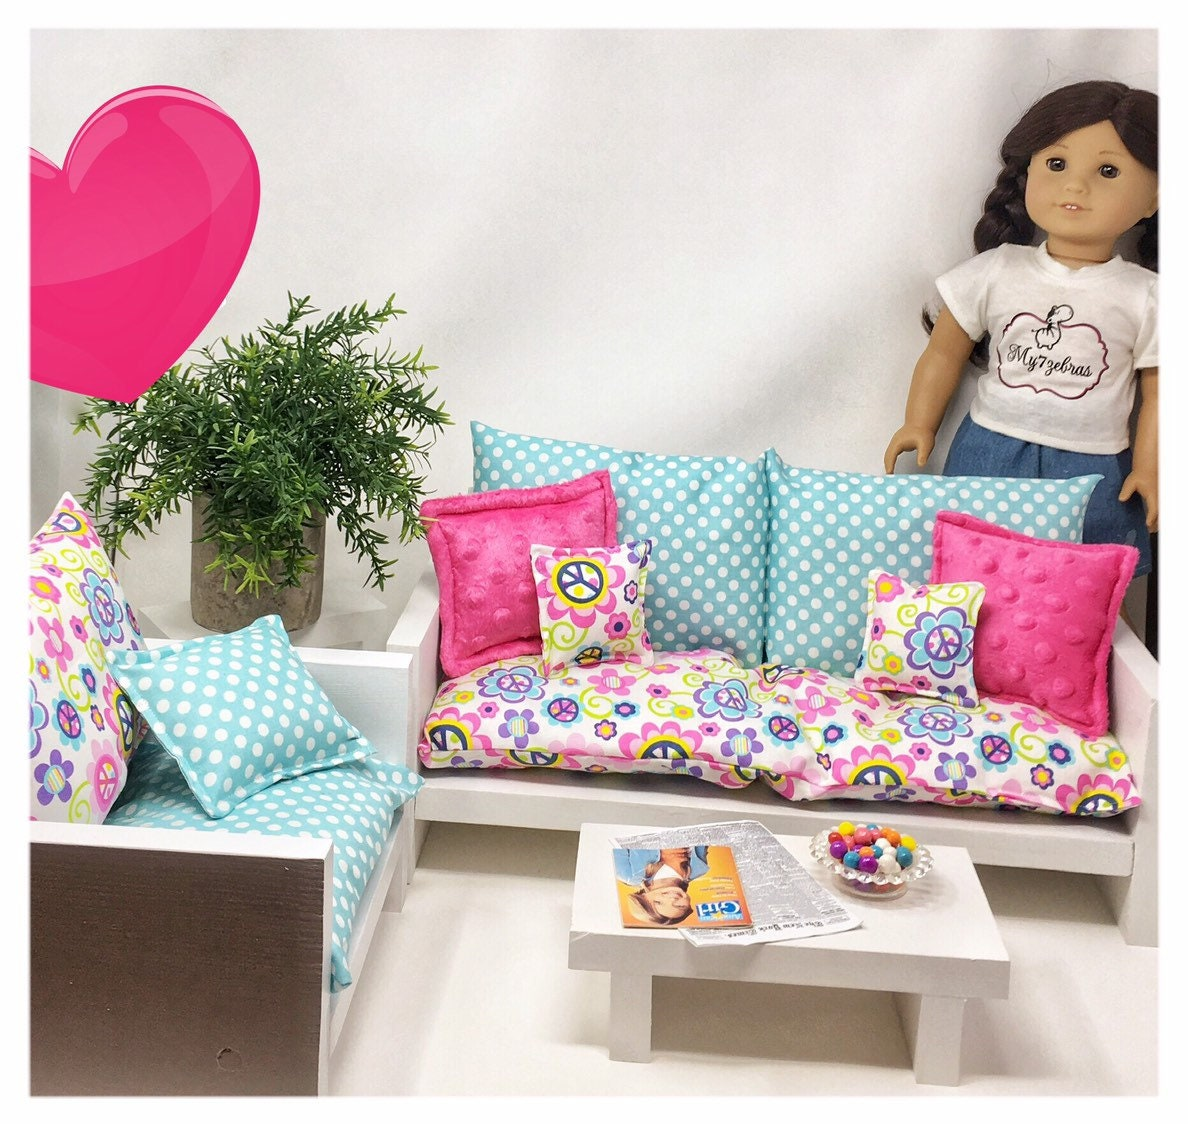 Living room set for 18 dolls fits the American Girl dolls/doll couch ...